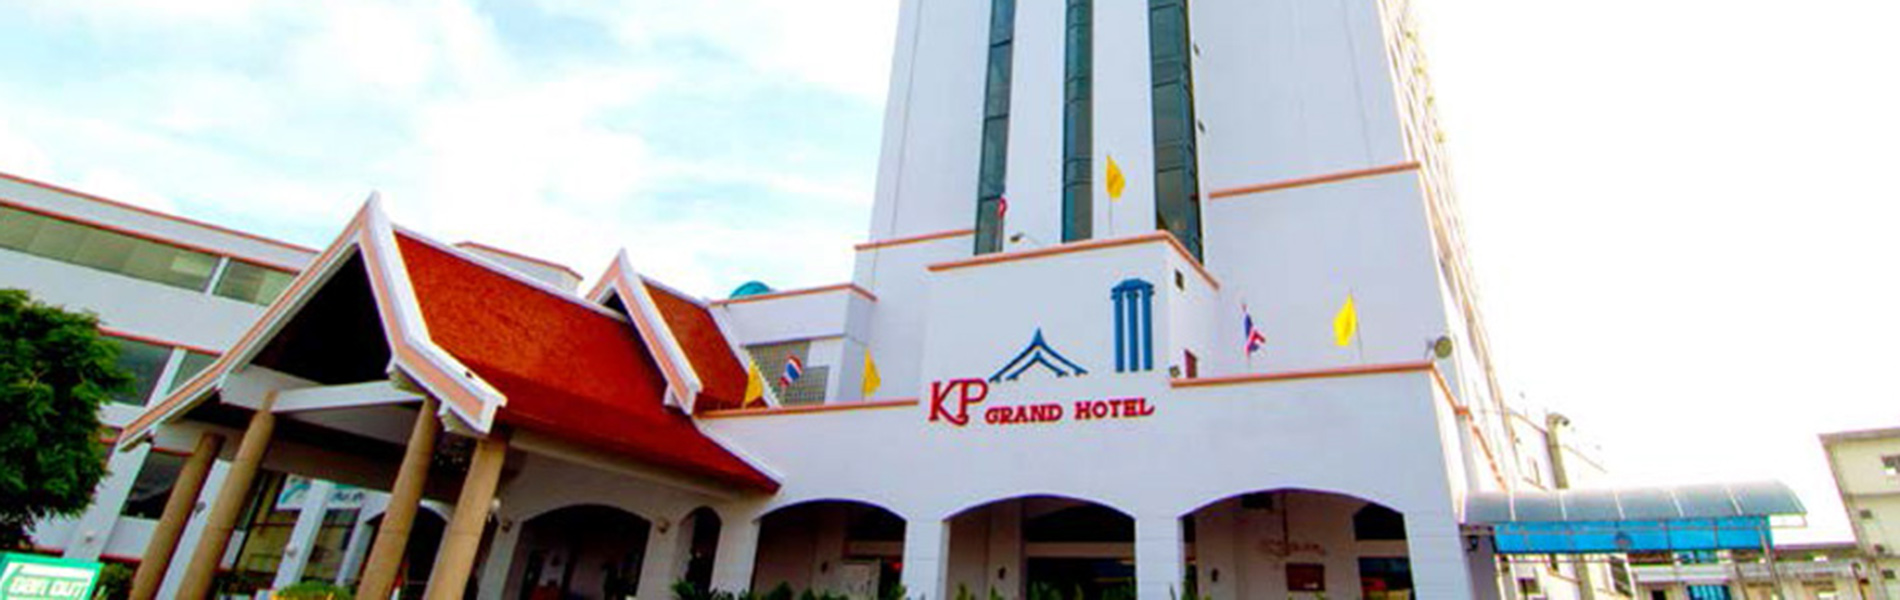 KP GRAND HOTEL CHANTHABURI